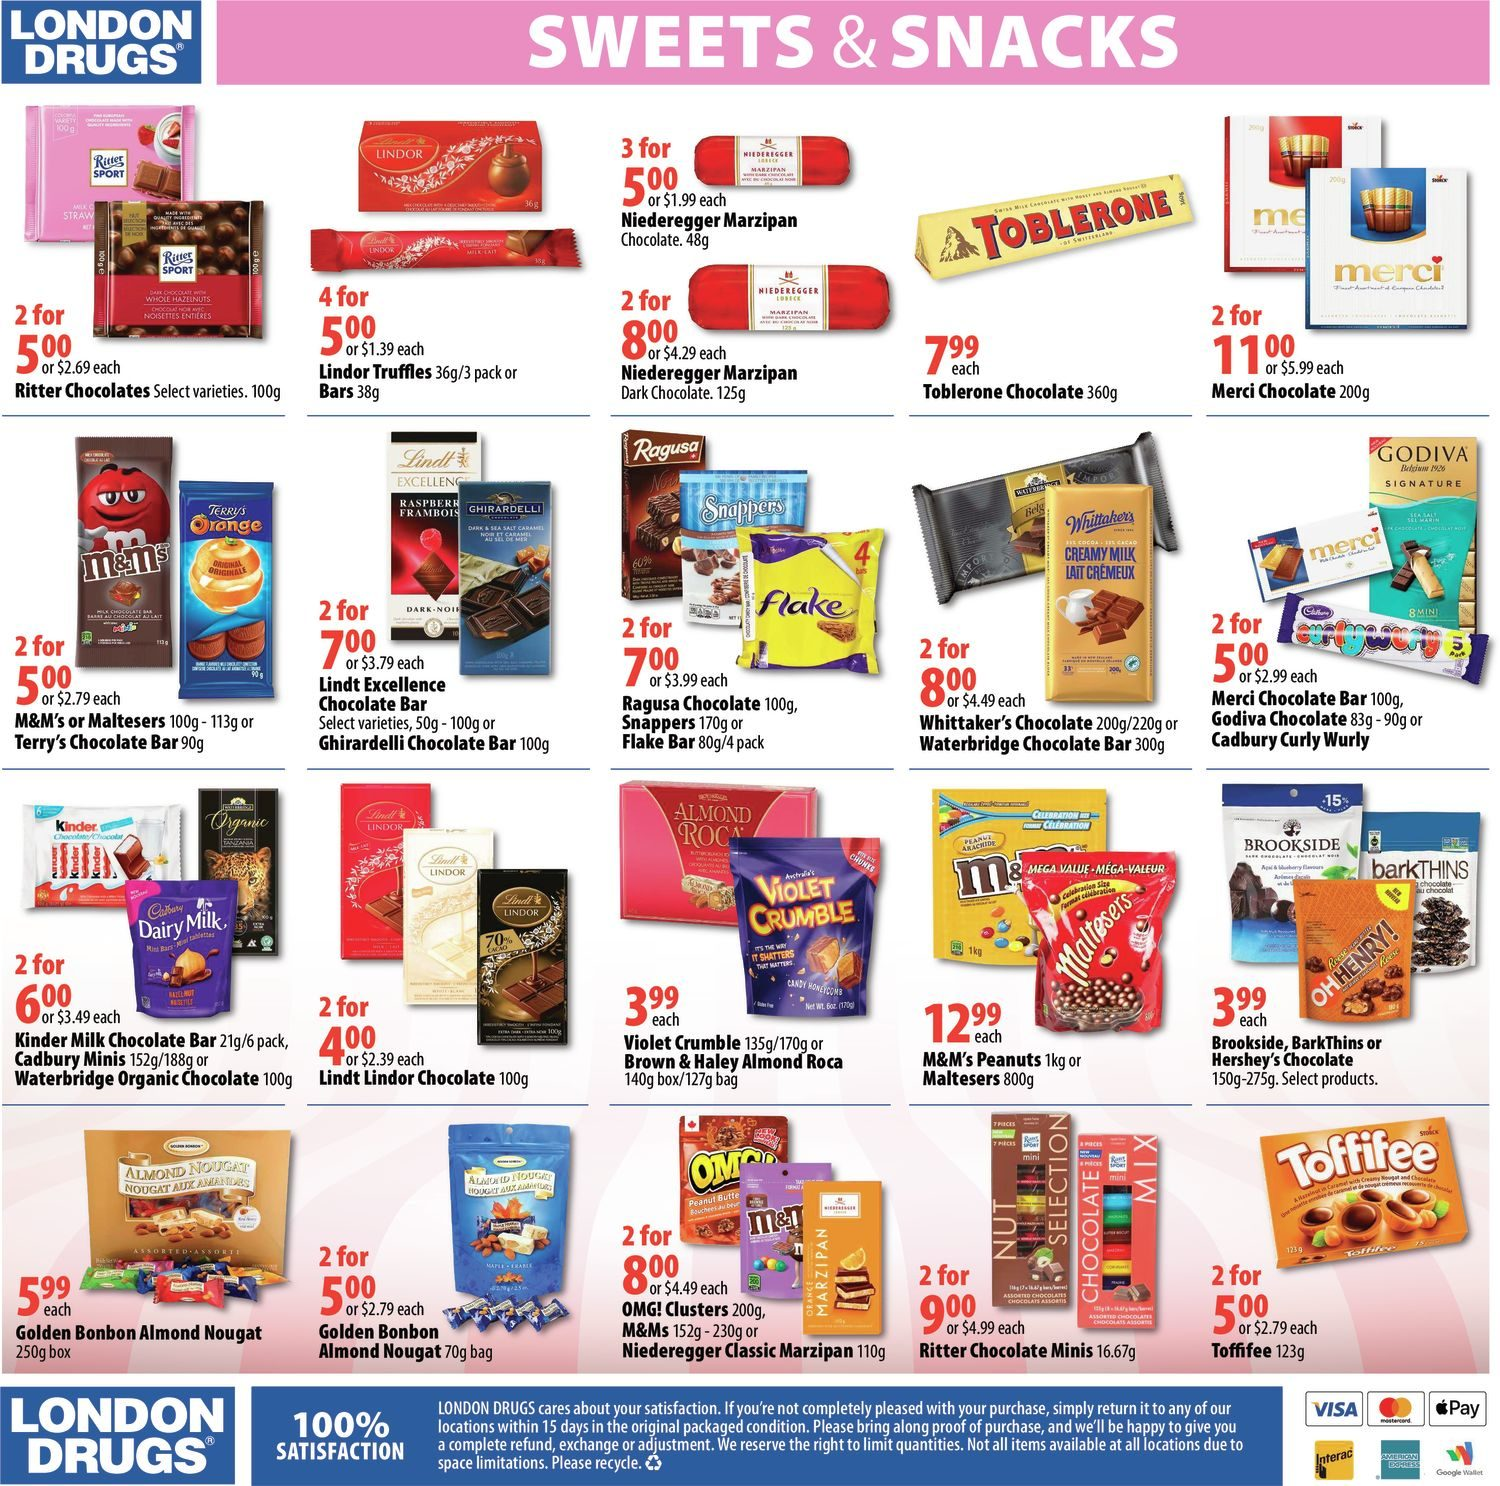 London Drugs - Sweets & Snacks - Page 4